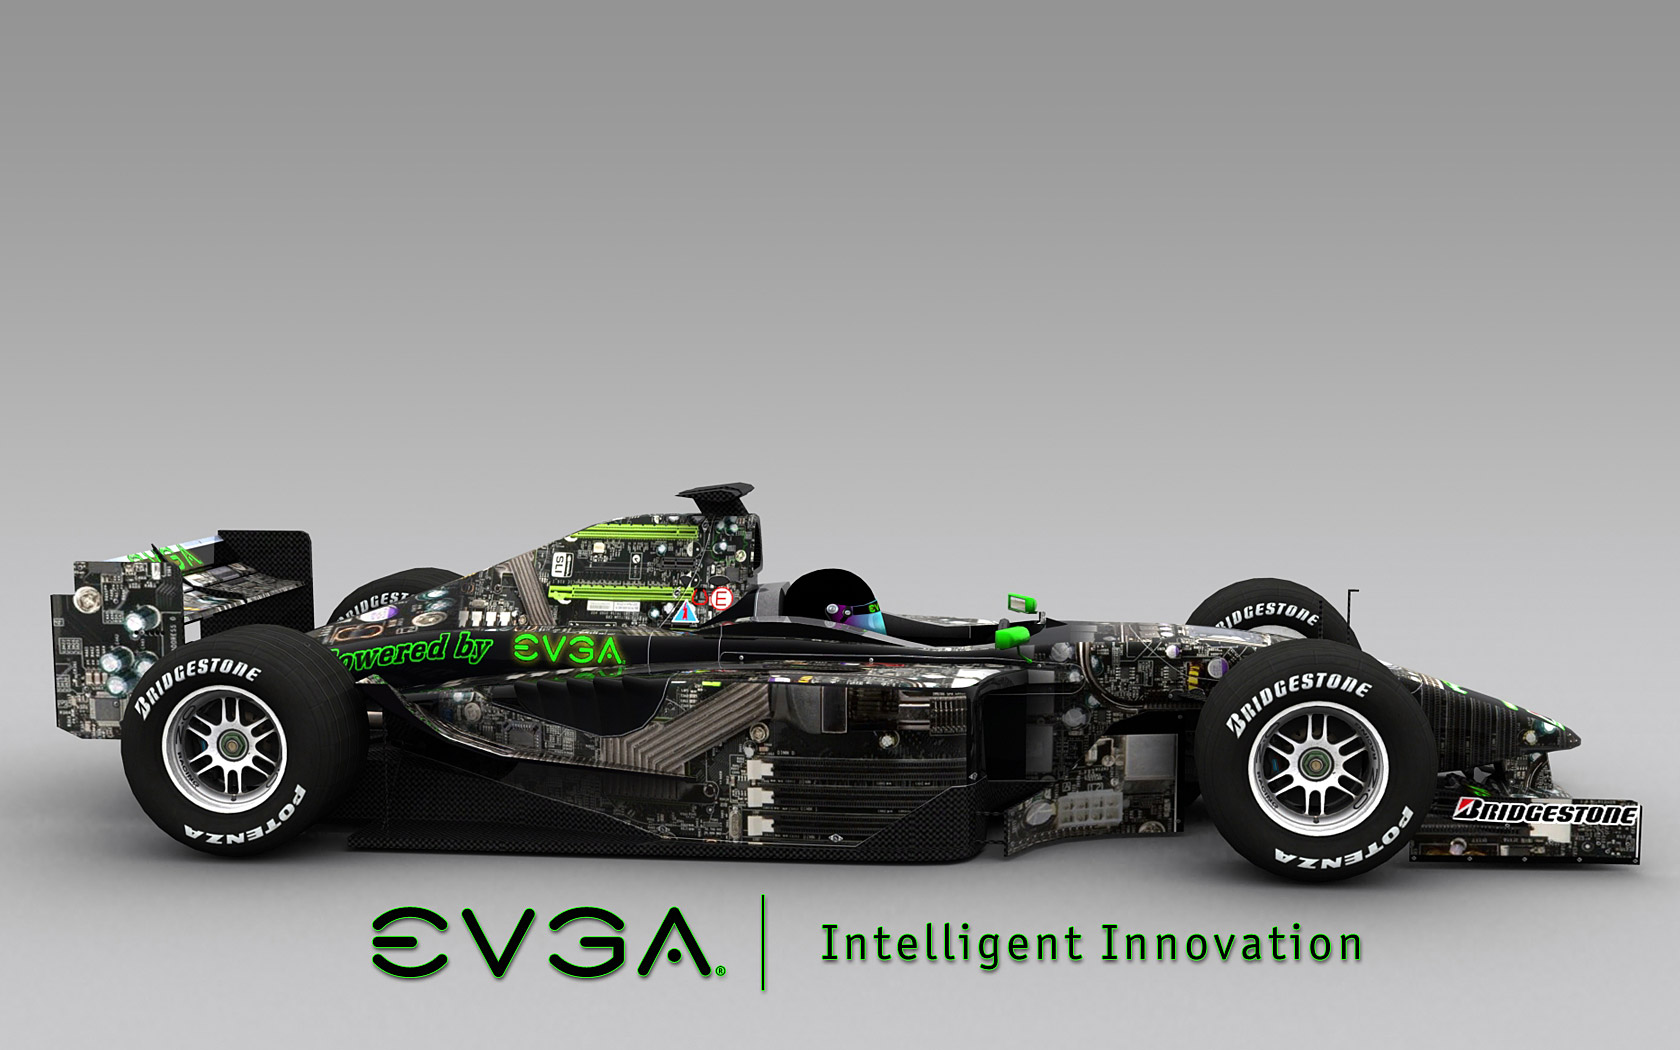 EVGA - Design the Ultimate EVGA Themed Wallpaper Contest - Design